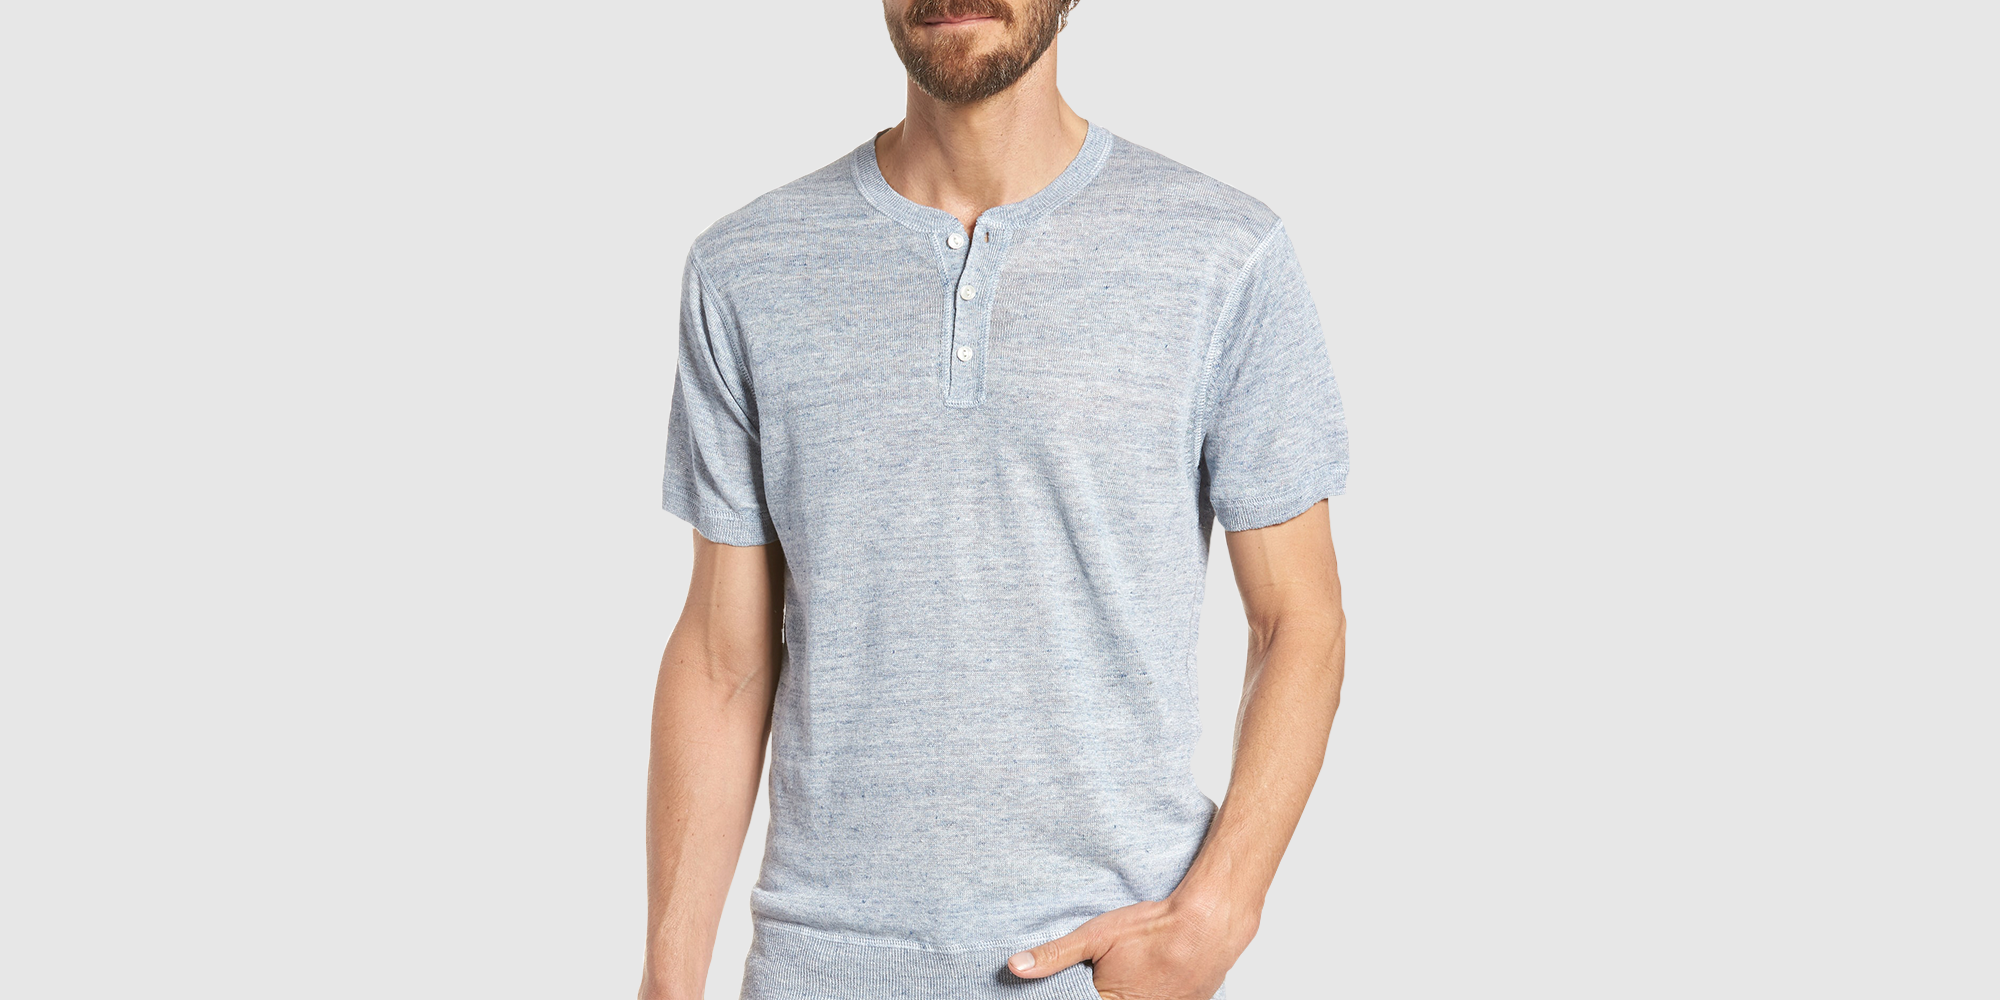 a300a1a13 The 11 Best Henley Shirts for Men to Wear This Fall